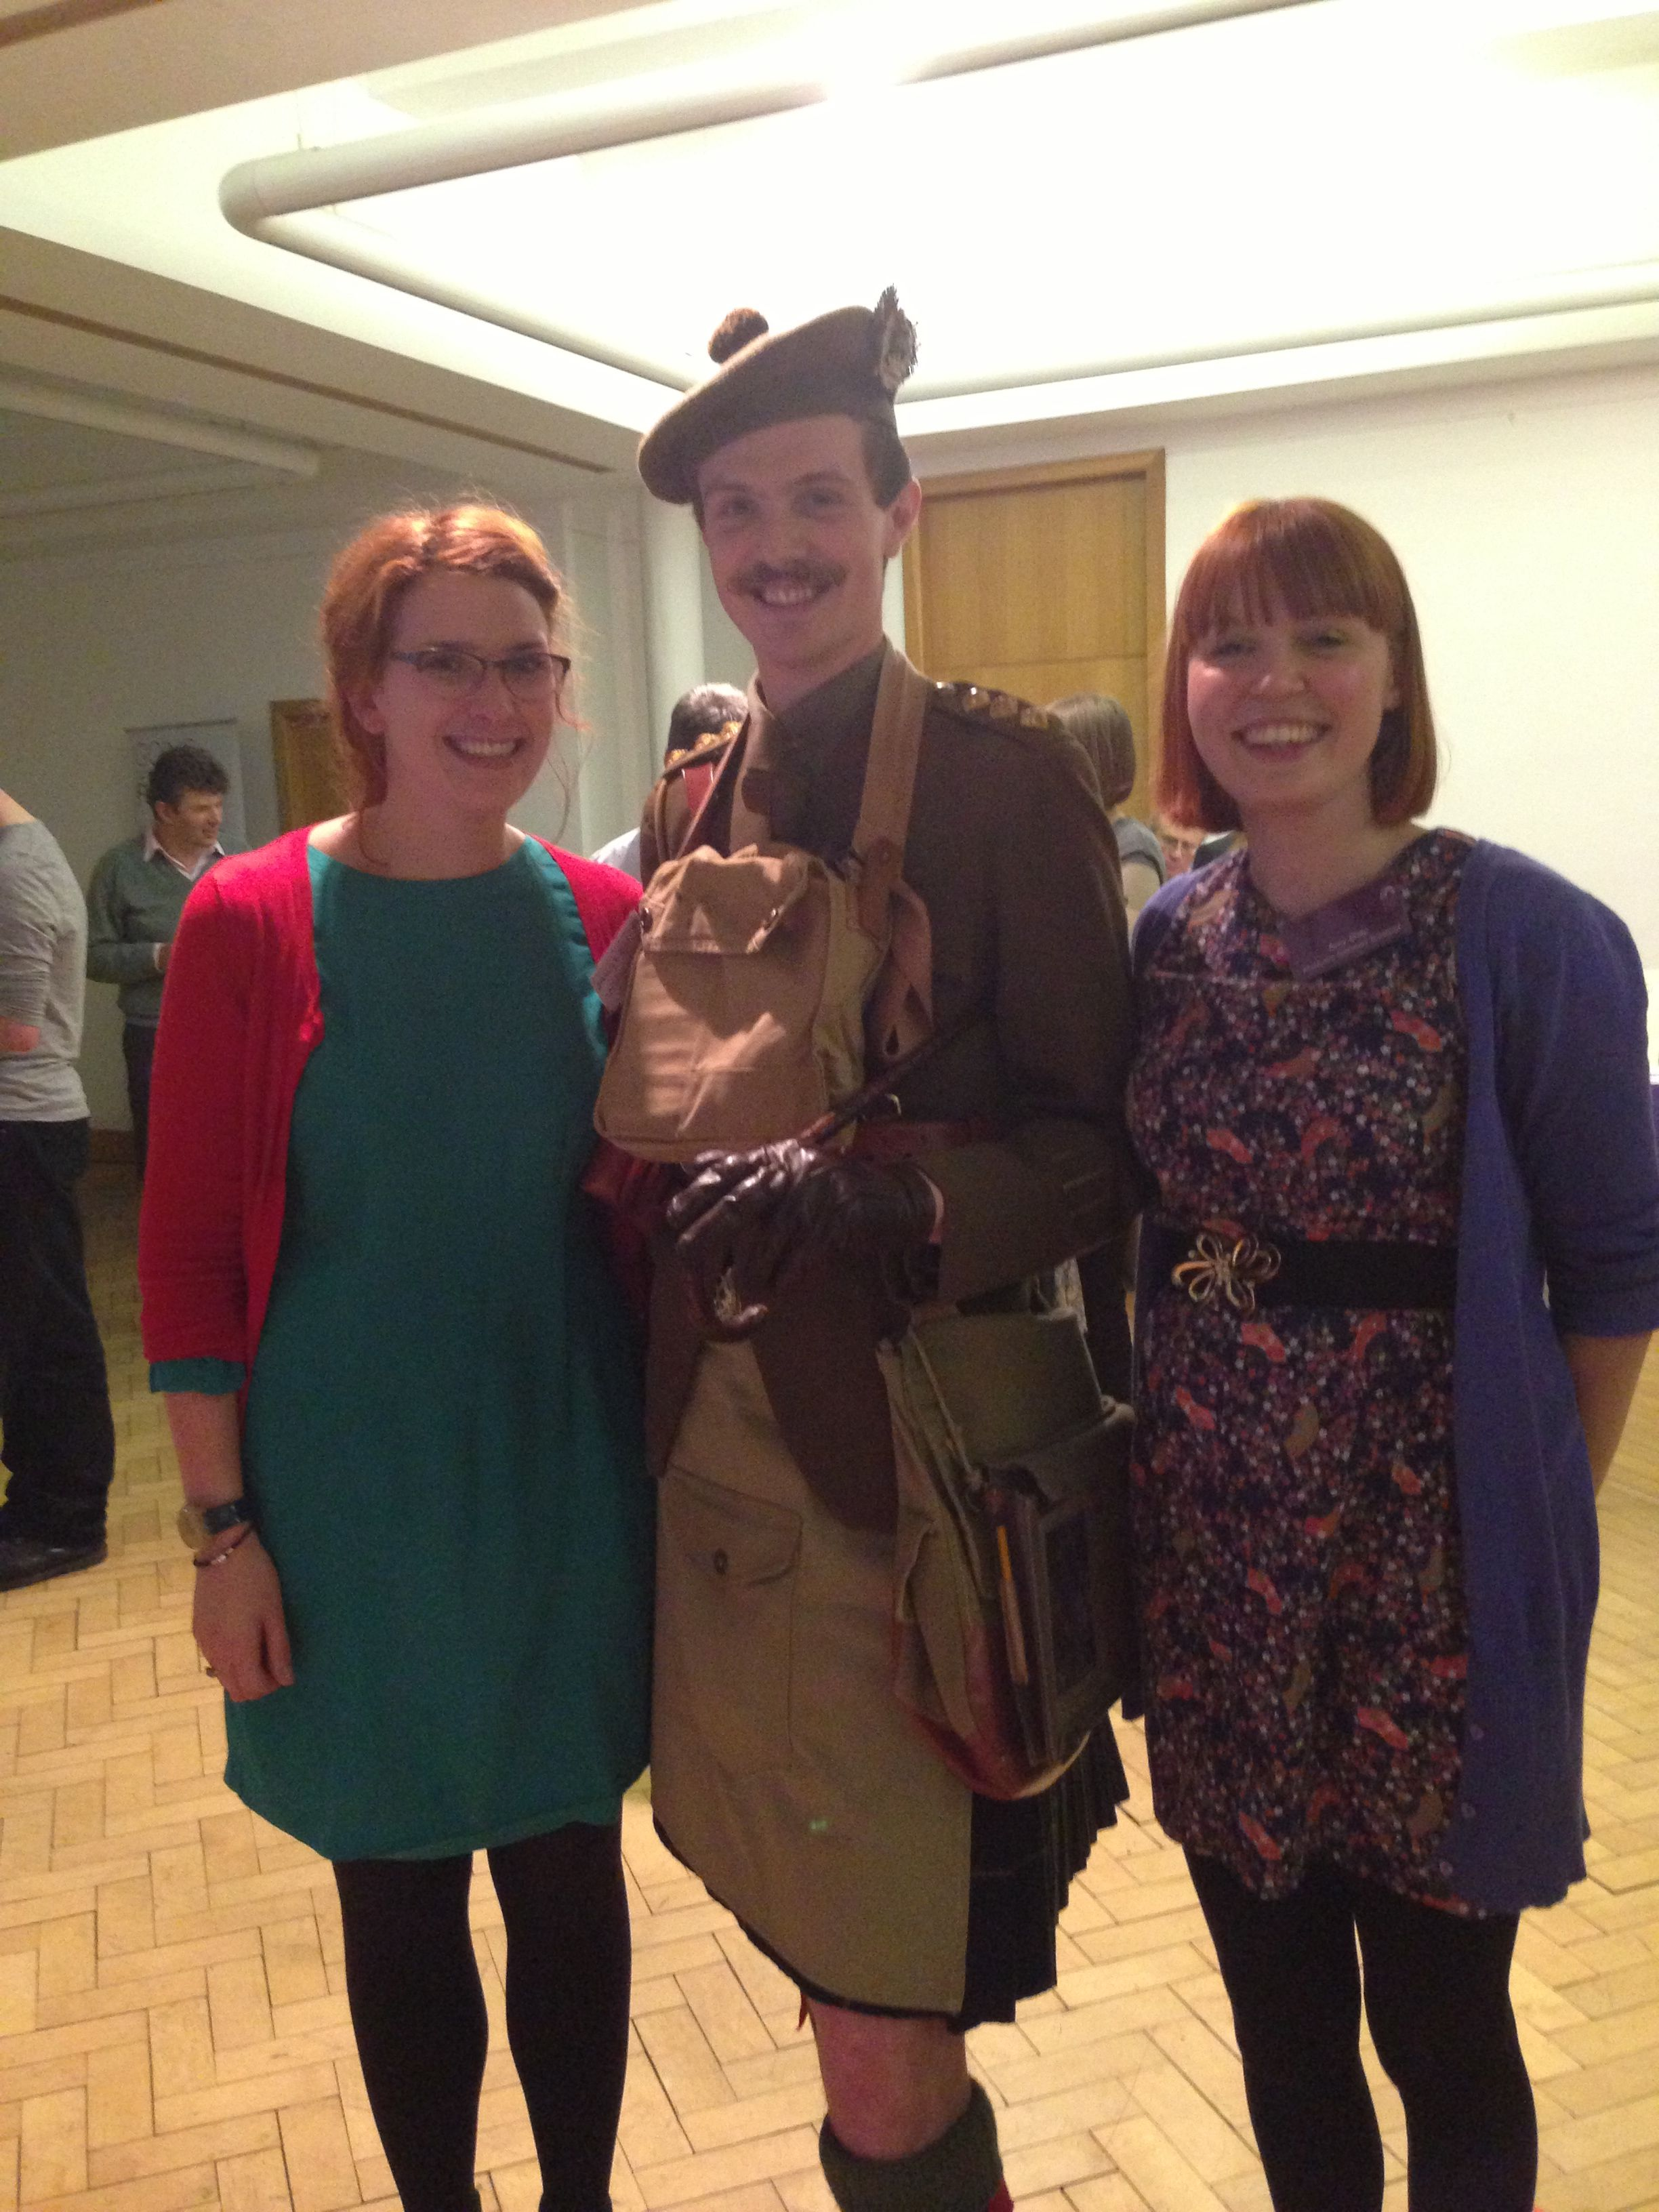 Museum curators meet Gordon Highlanders solider 1914 - 1918 at World War One marketplace event #WWI